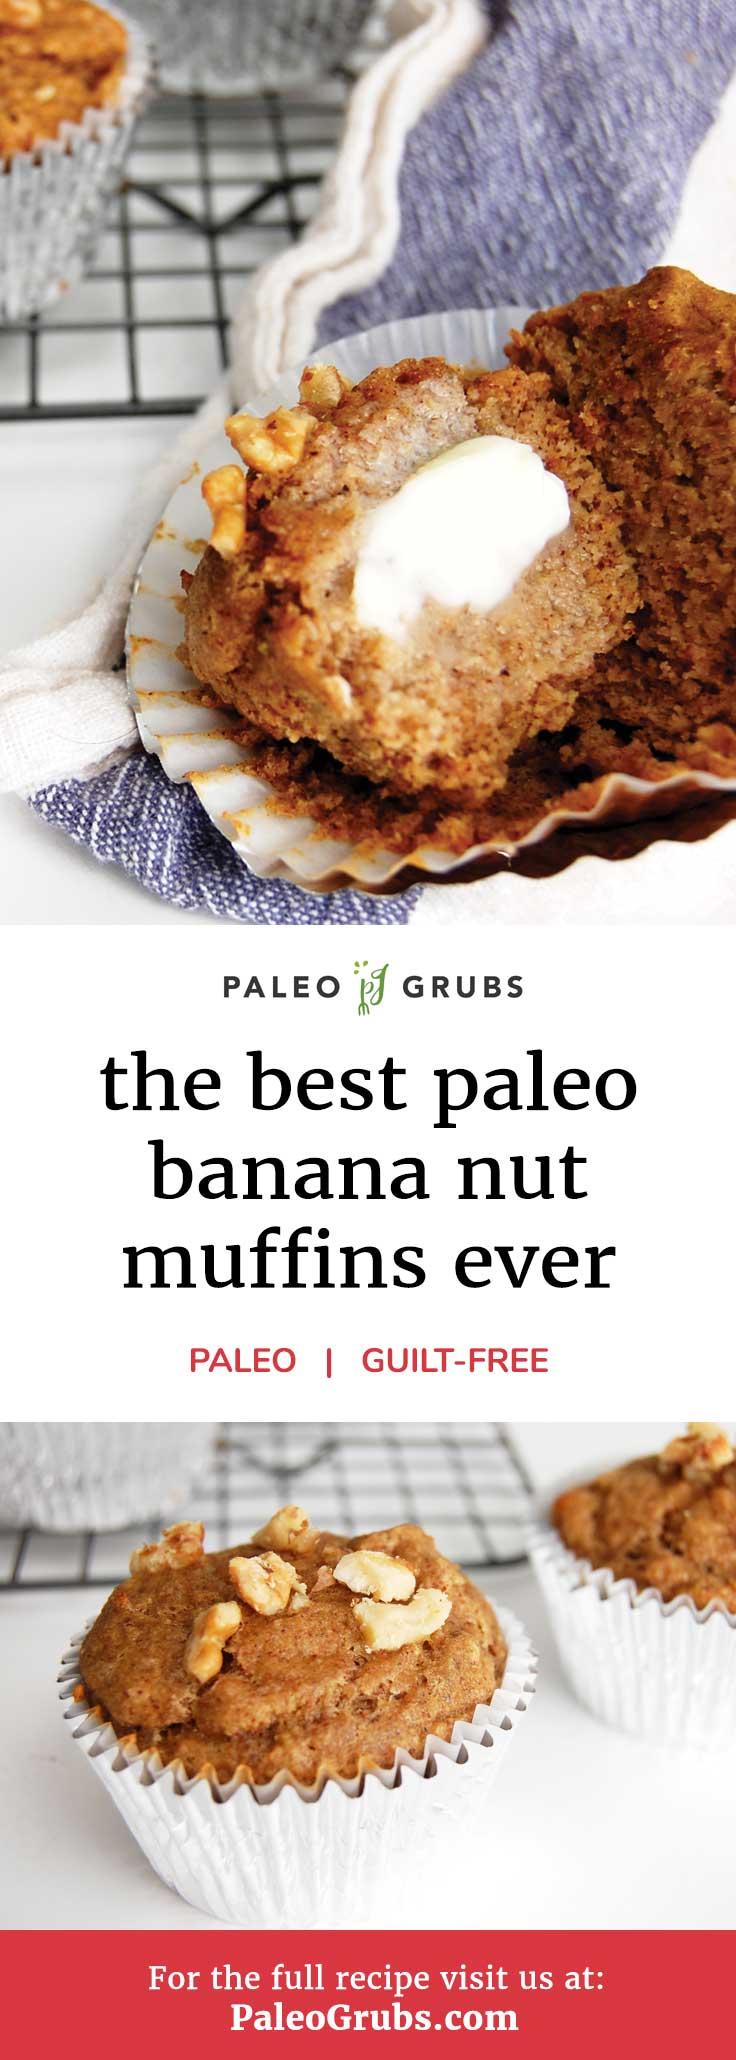 The Best Paleo Banana Nut Muffins Ever- these are SO good!